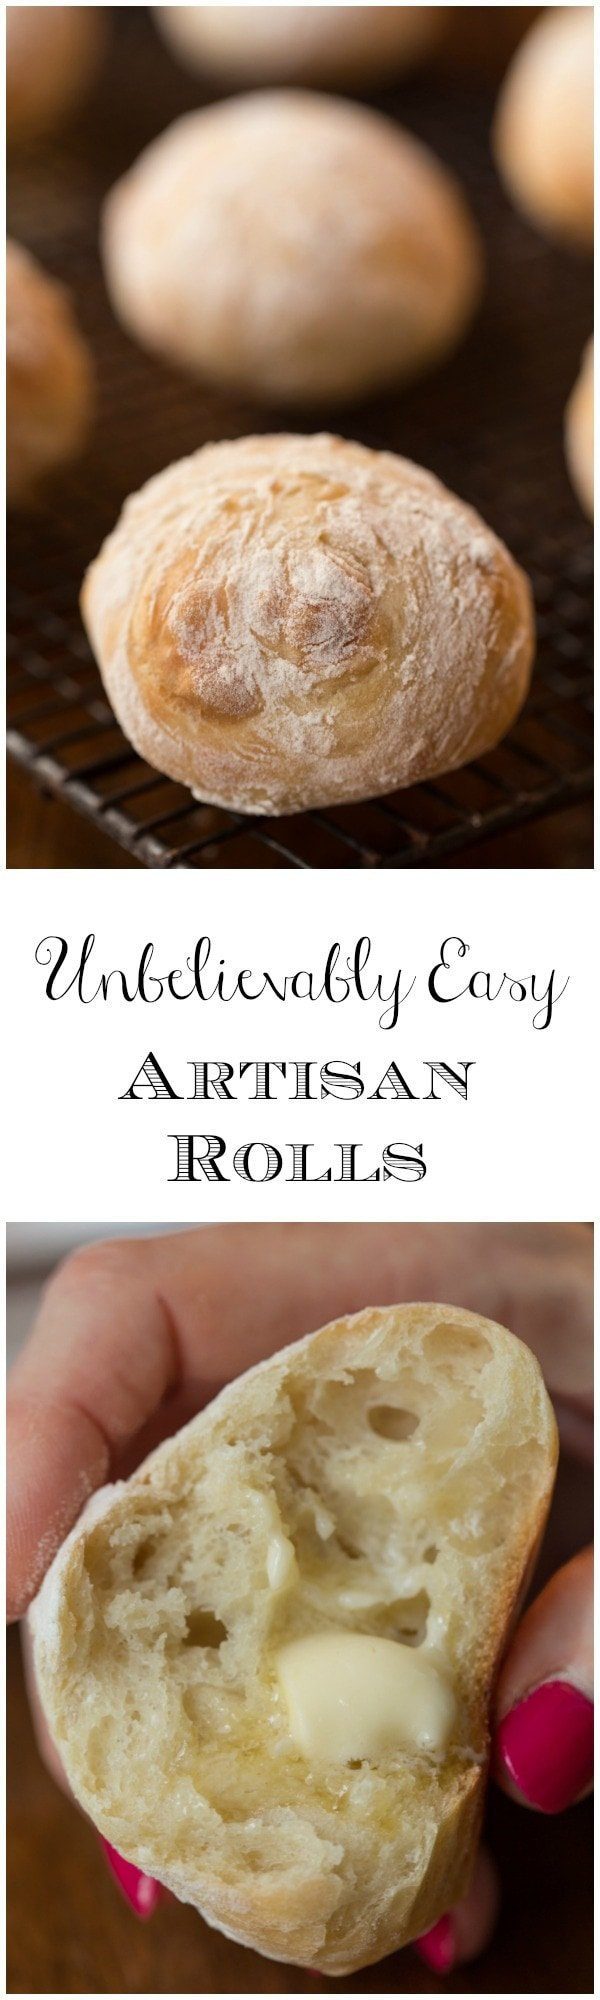 These Easy Artisan Rolls truly are unbelievably easy. Stir up the dough then go to bed. In the morning, shape and bake. Unbelievably delicious too!